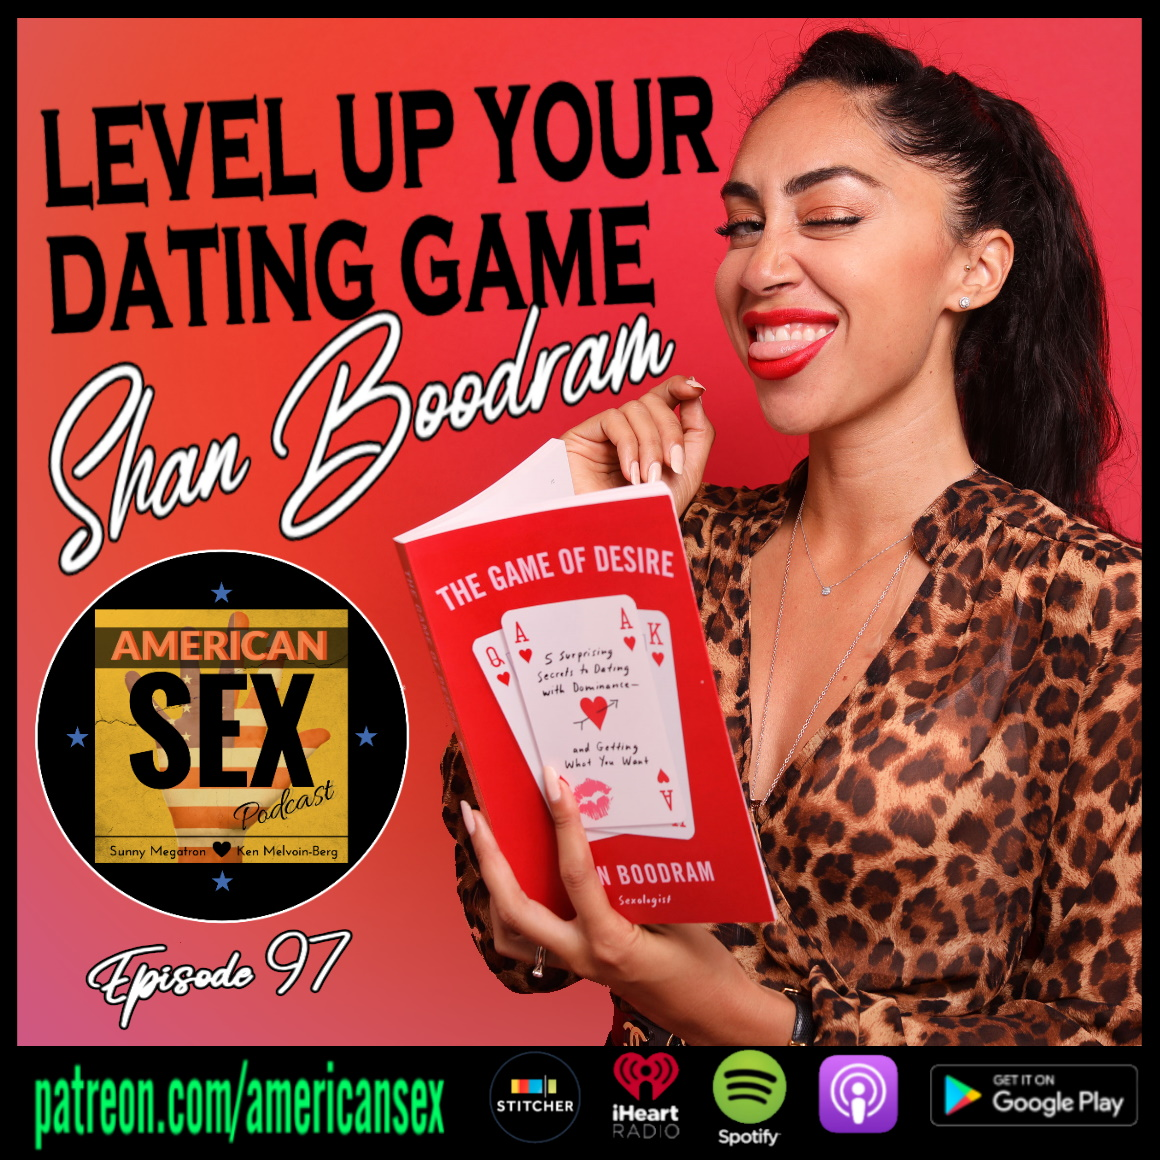 Shannon Boodram The Game of Desire Book